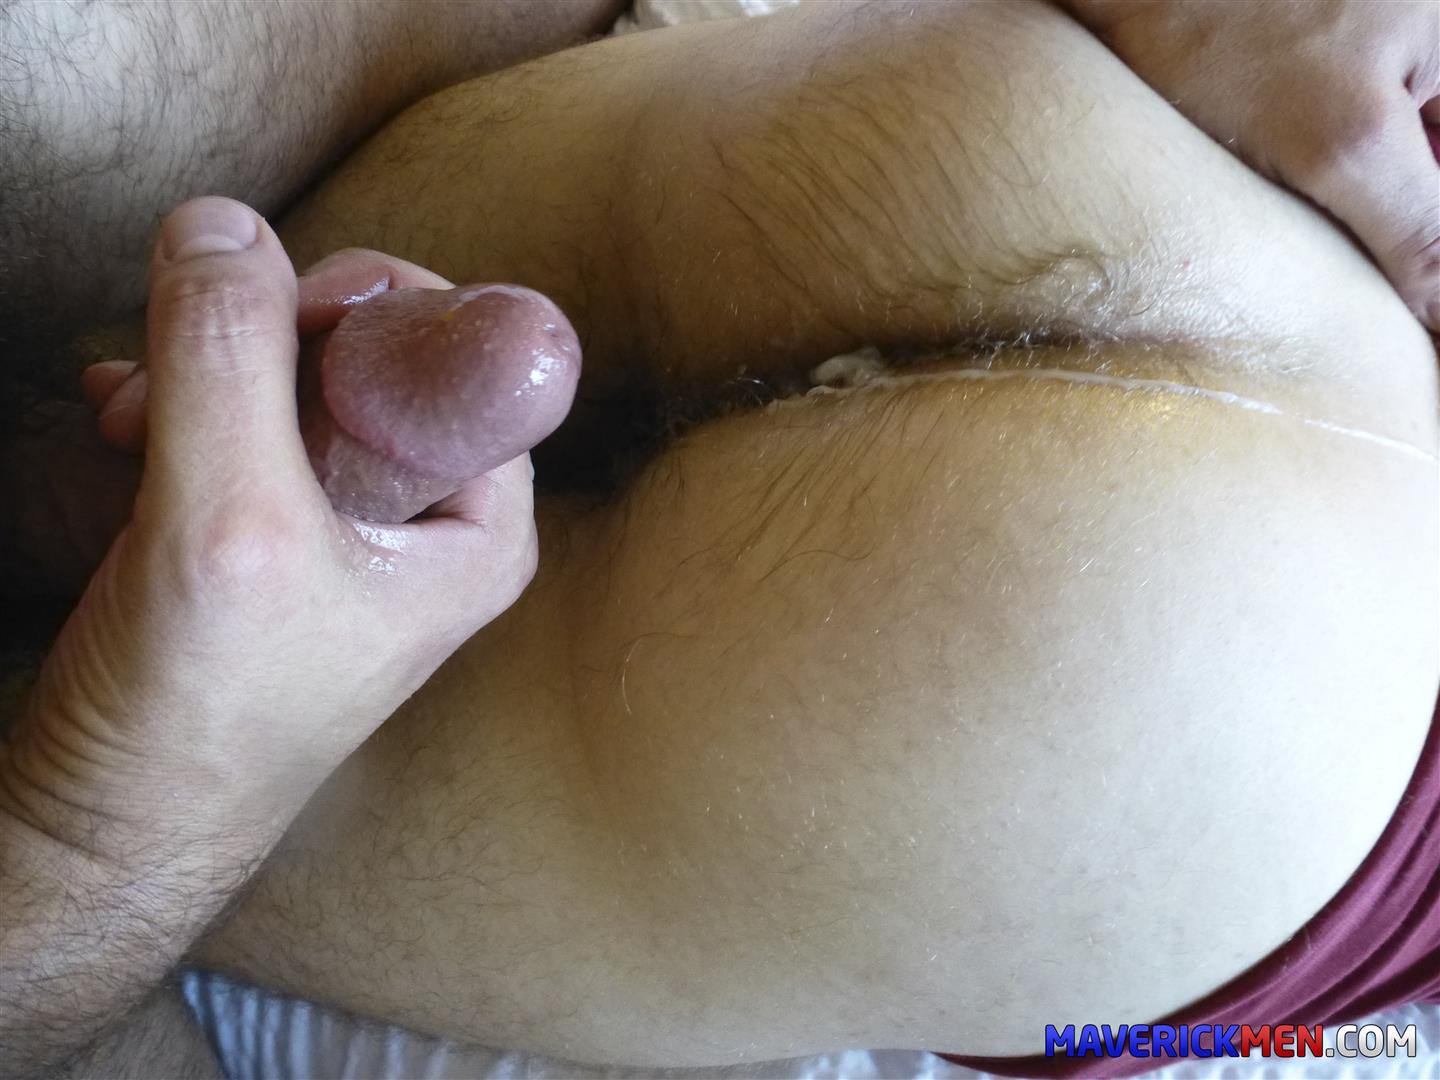 Porn Little picture virgins hairy with you agree